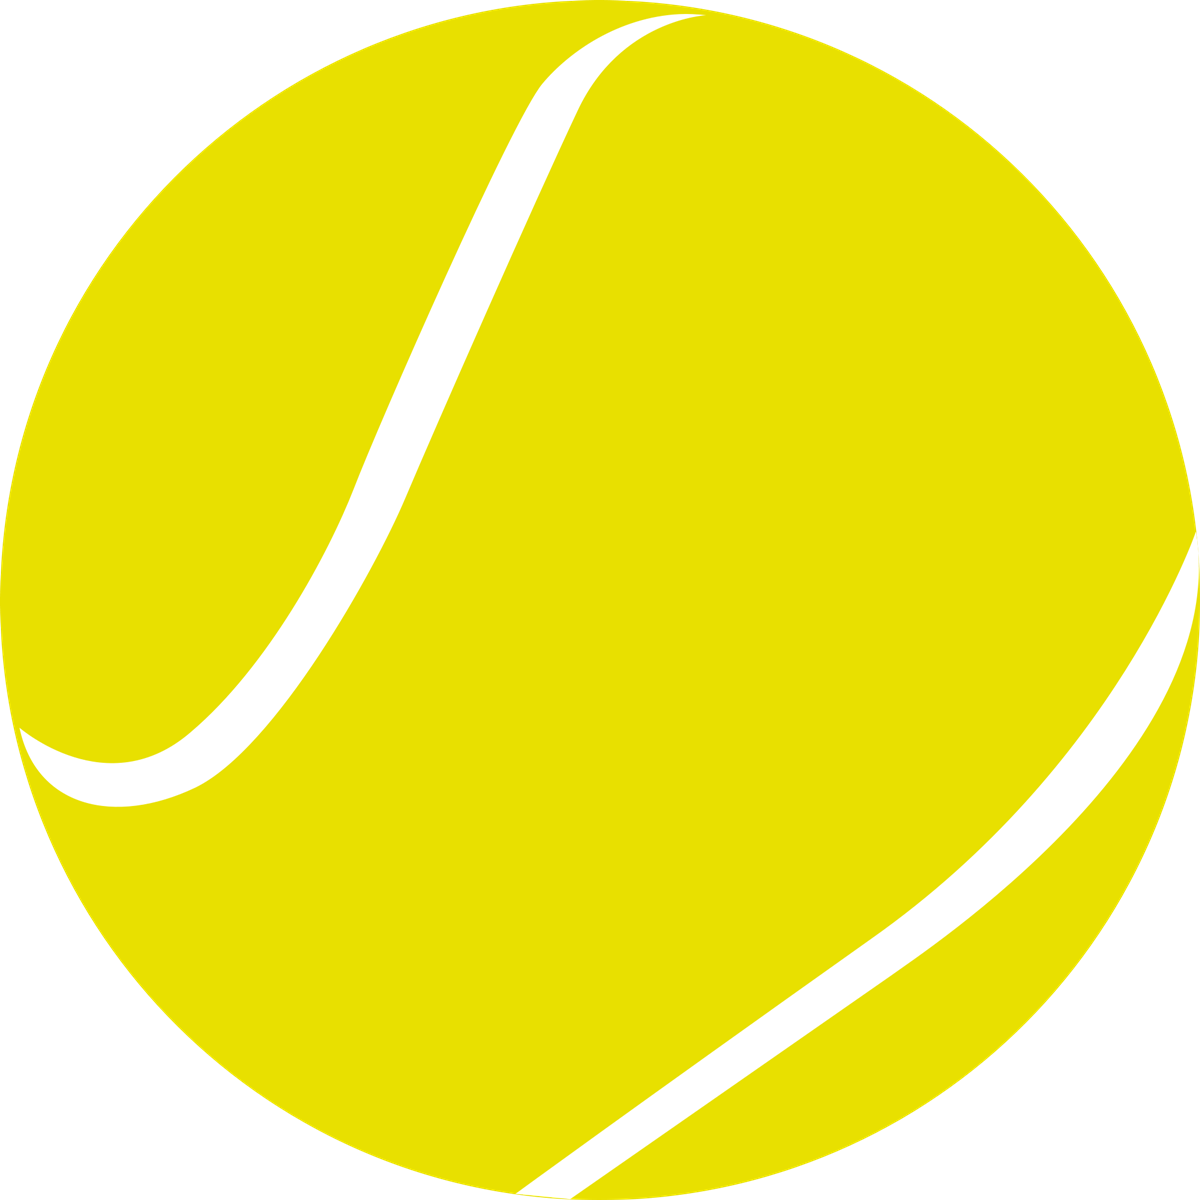 Tennis-images-free-download-tennis-ball-racket-clipart